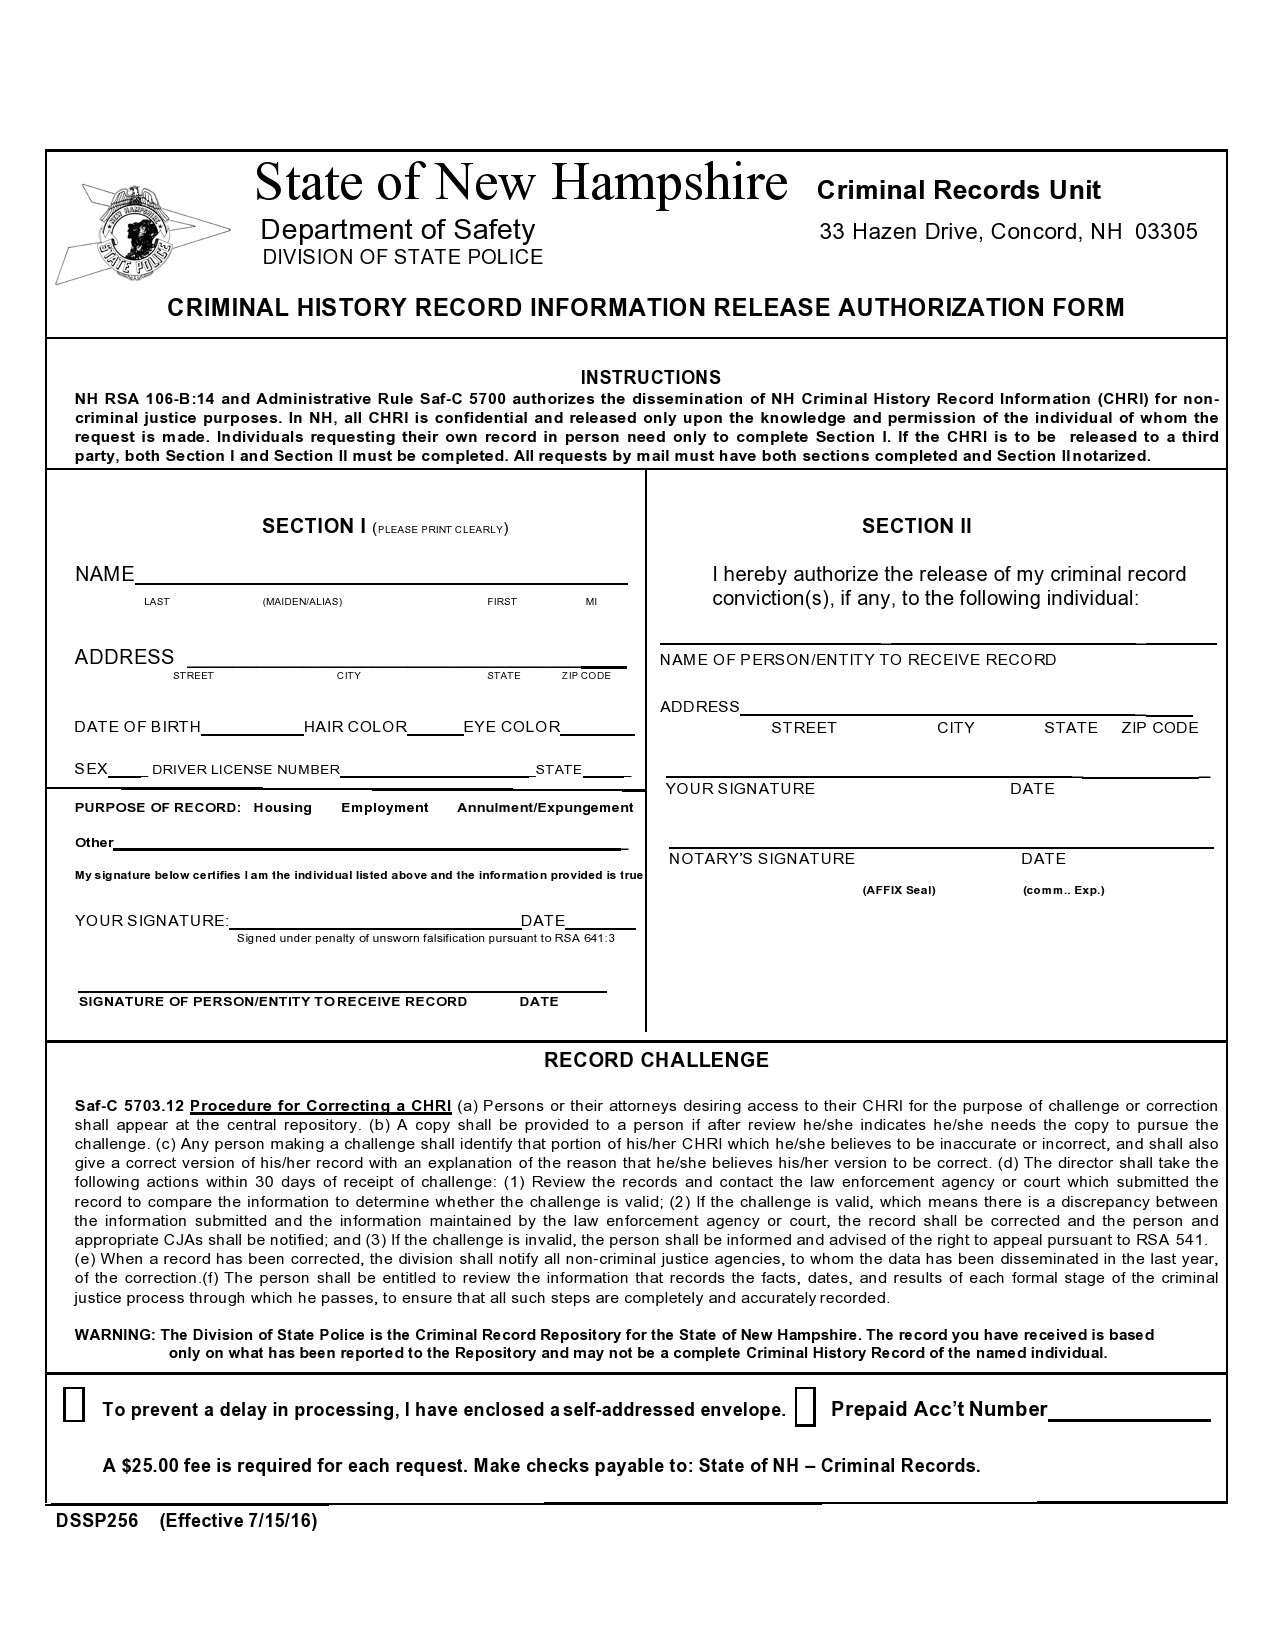 Free background check form 17